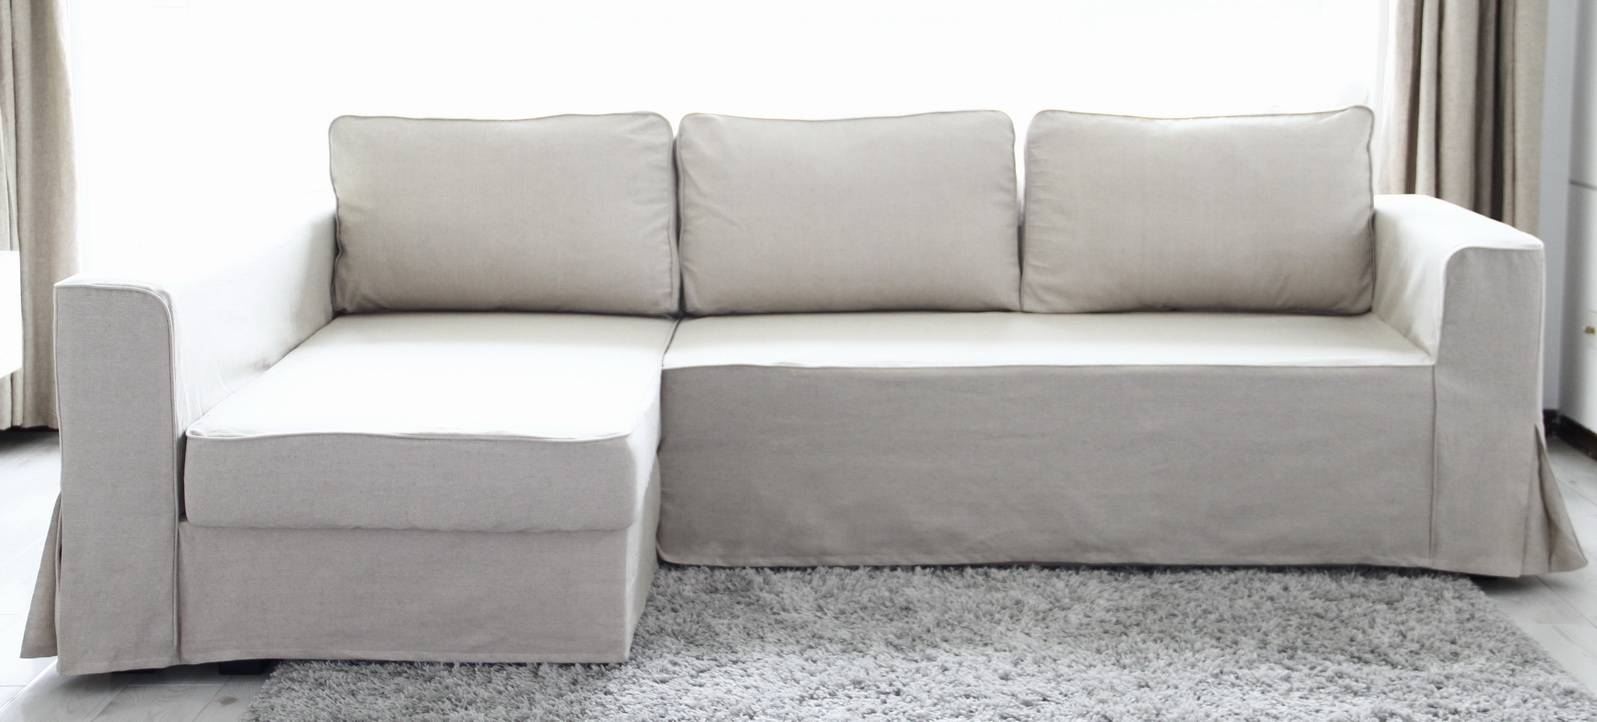 About The Ikea Sleeper Sofa - S3Net - Sectional Sofas Sale : S3Net throughout Sleeper Sectional Sofa Ikea (Image 1 of 25)